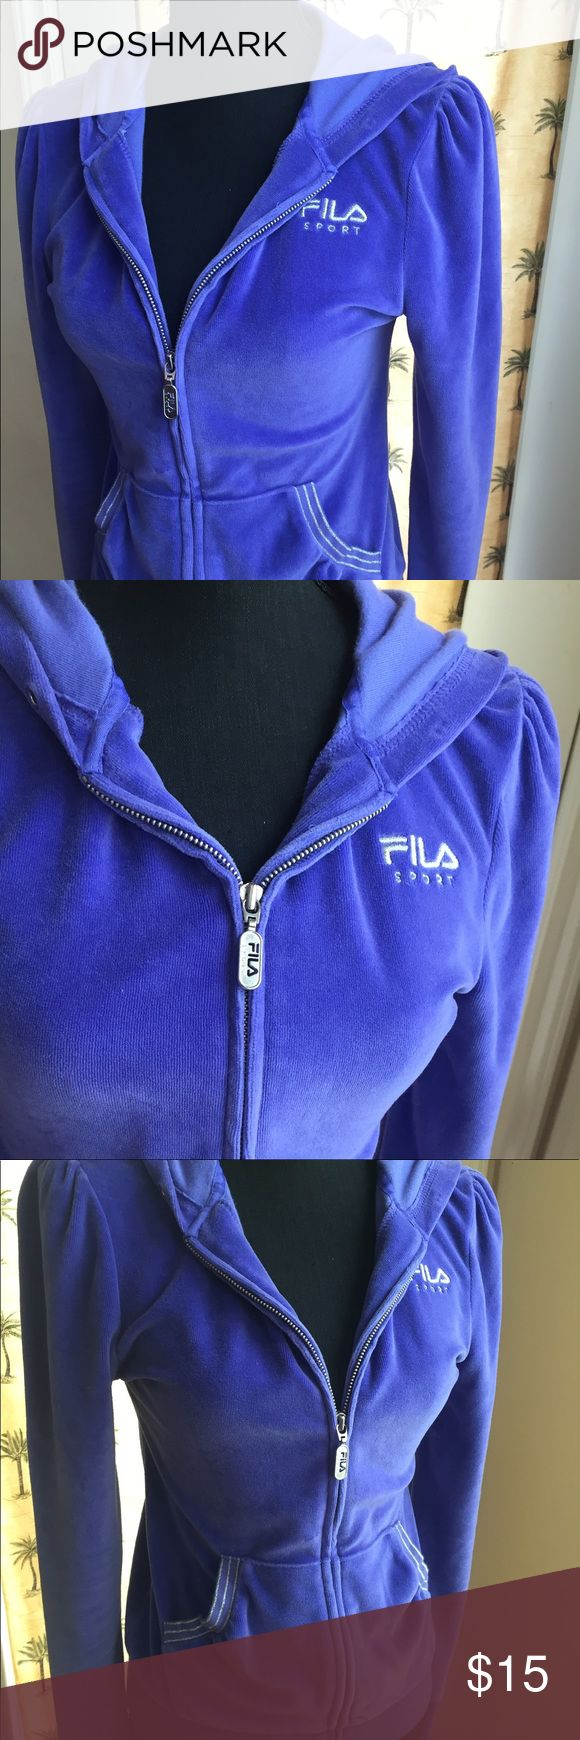 """FILA Purple Zip-Up Hoodie Sweatshirt Jacket Small FILA - Women's exercise athletic work out gear, tracksuit / sweat suit purple zip-up hoodie jacket sweatshirt. Excellent condition with no flaws. Regular size small. Press """"Add to a Bundle"""" for a private discounted offer 😉 Fila Tops Sweatshirts & Hoodies"""